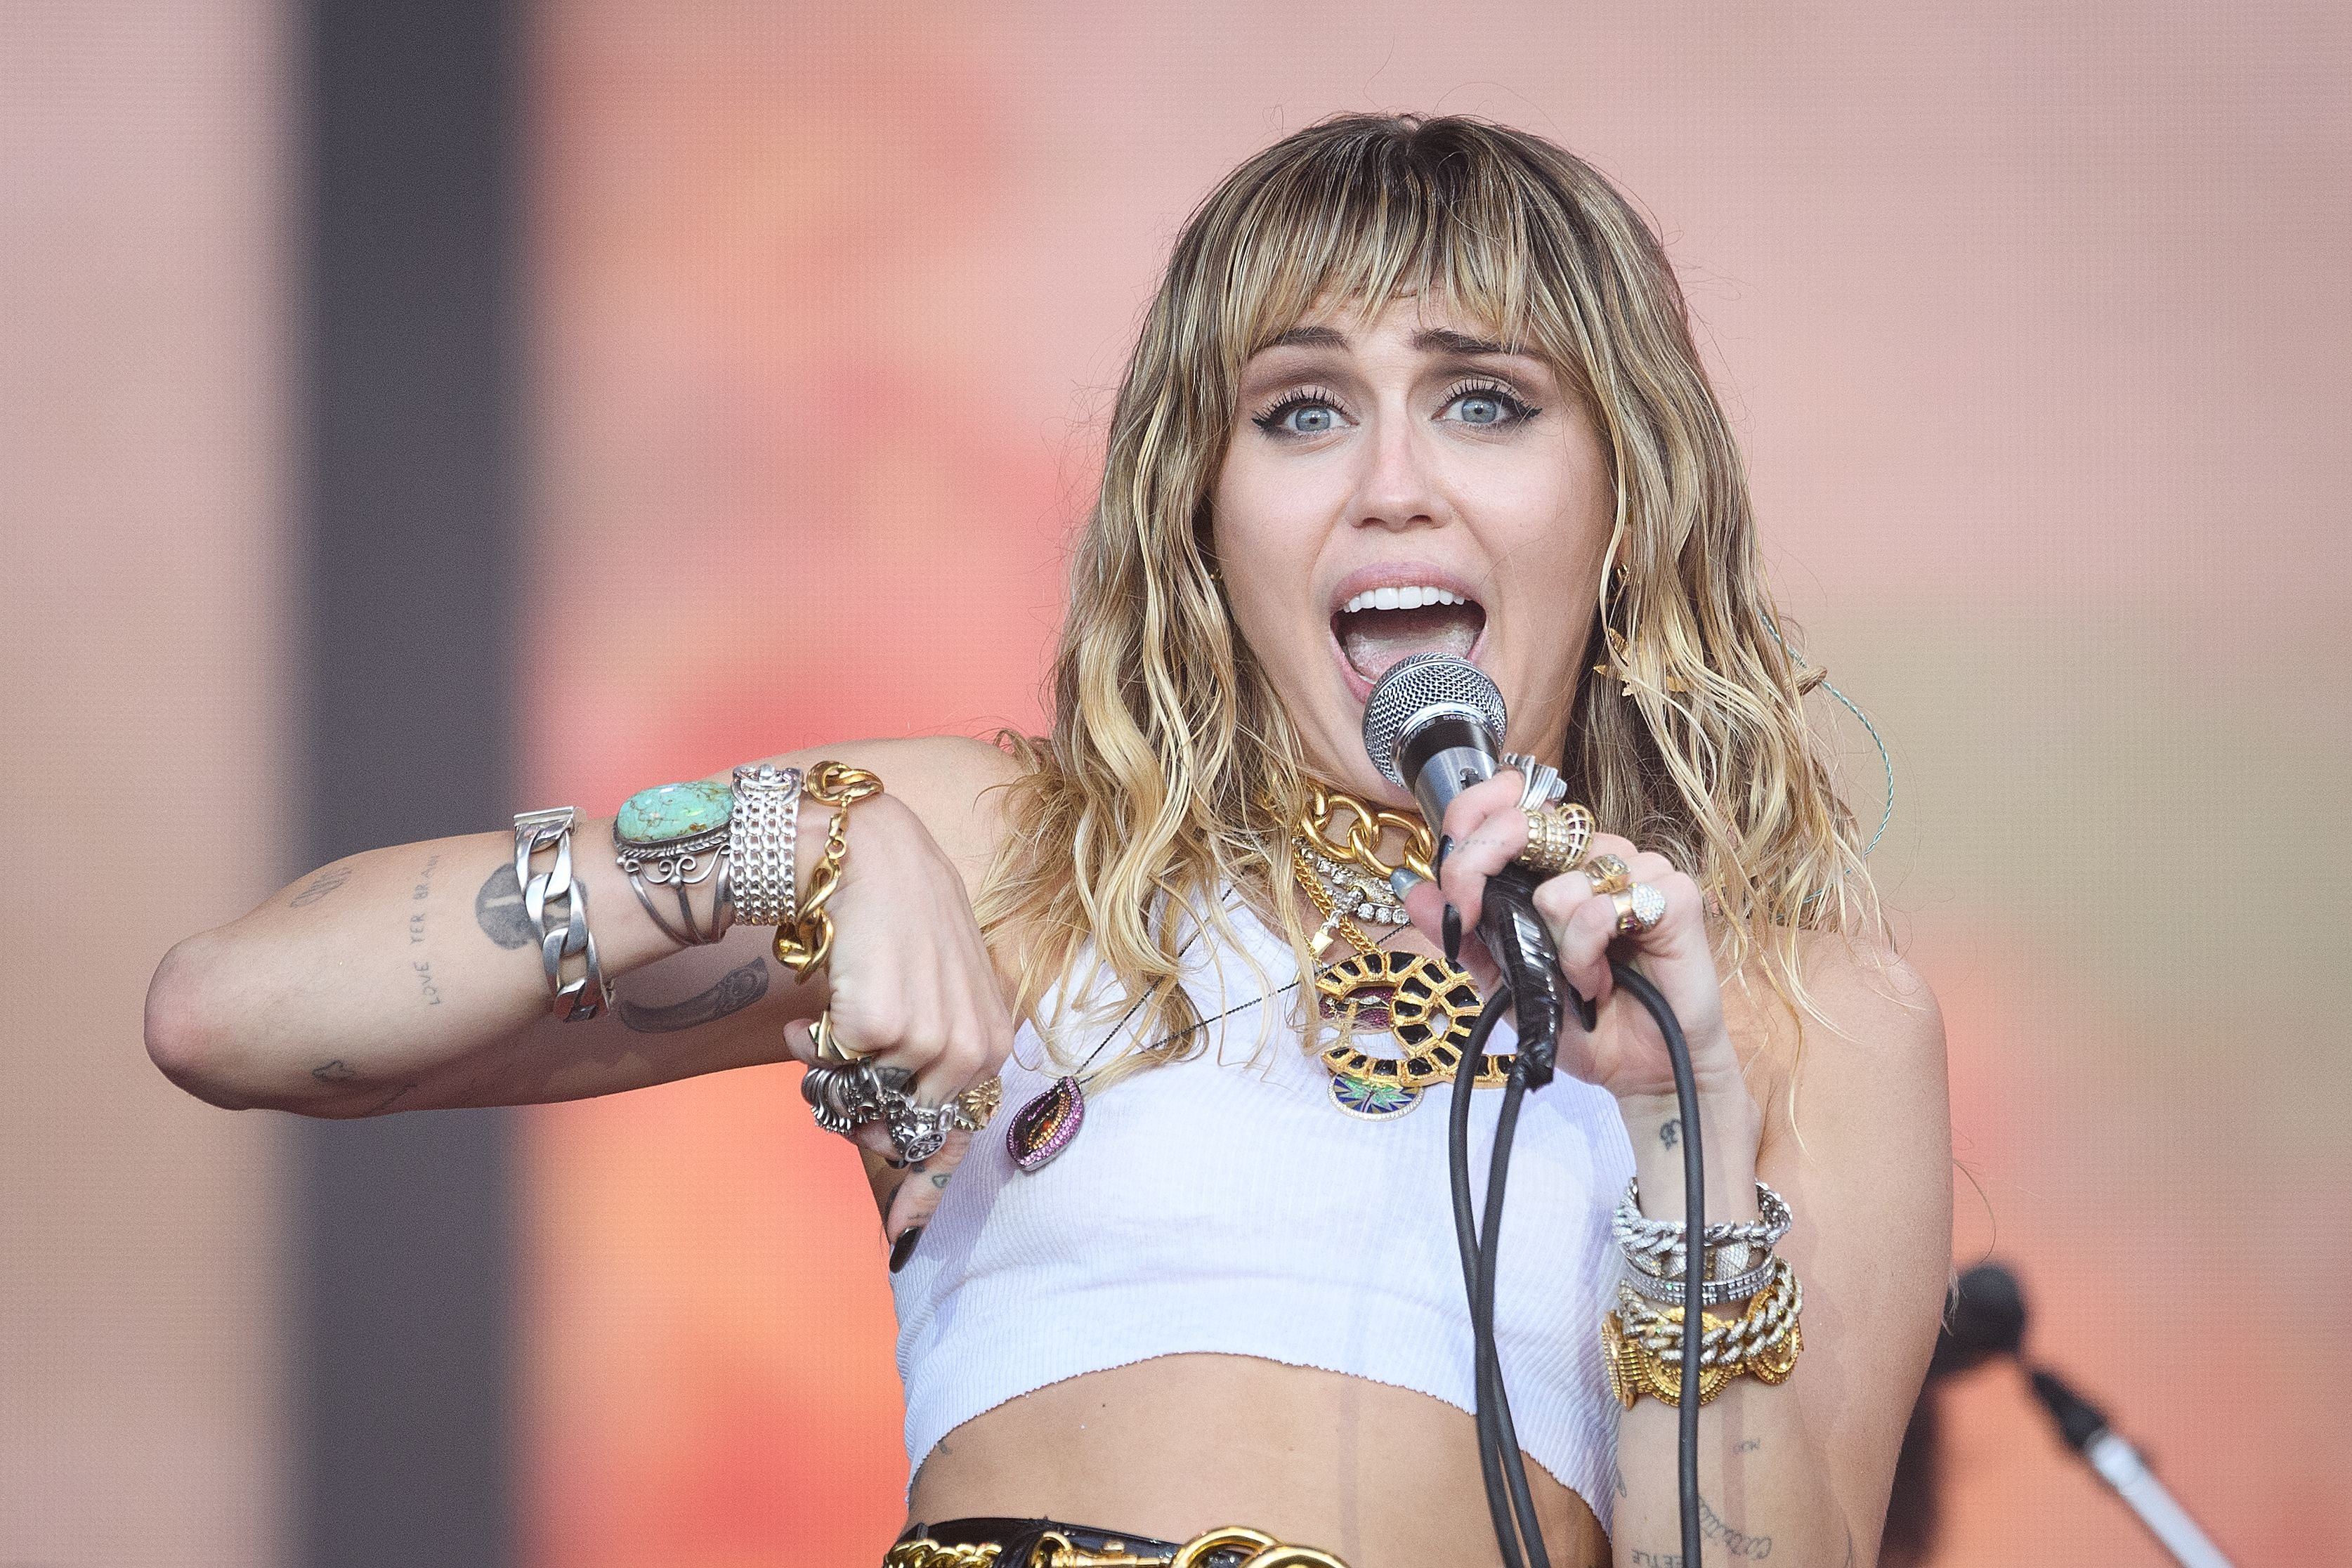 Miley Cyrus on the Pyramid Stage at the Glastonbury Festival at Worthy Farm, Pilton on June 30, 2019, in Glastonbury, England | Photo: Leon Neal/Getty Images